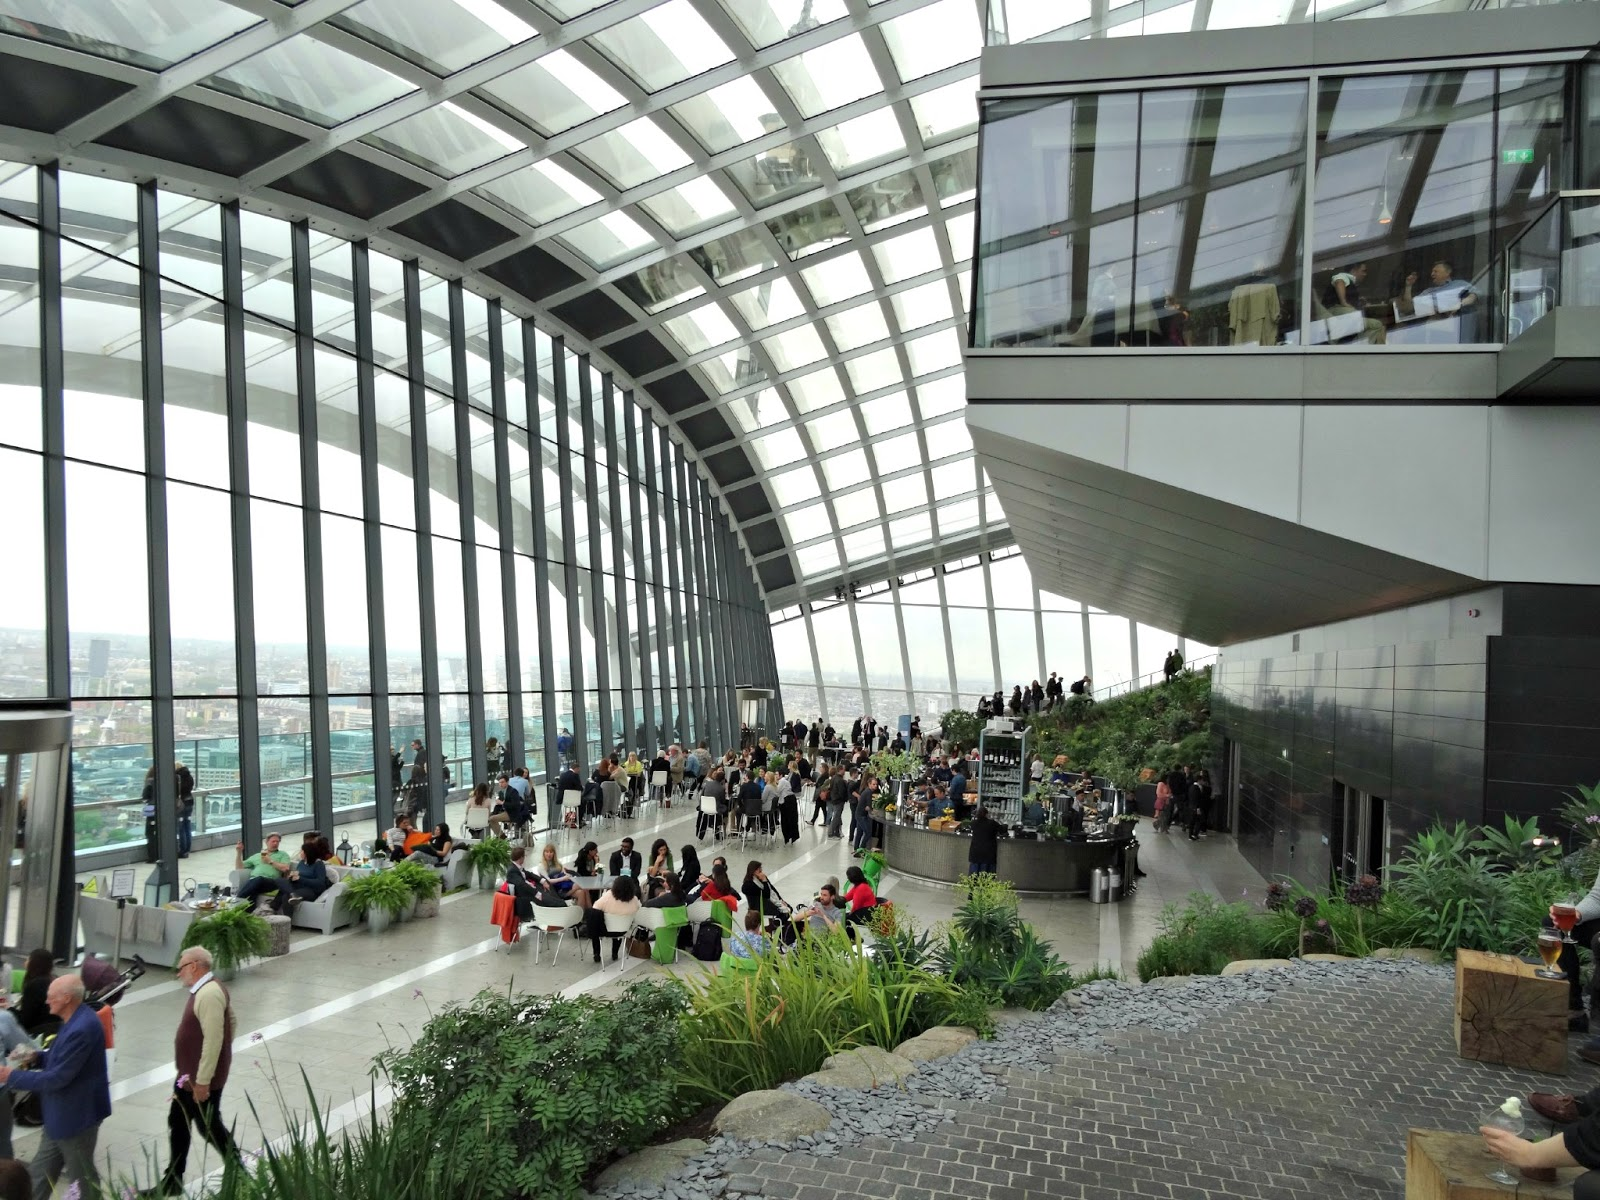 Style lingua lifestyle a visit to londons sky garden sky garden london review sisterspd